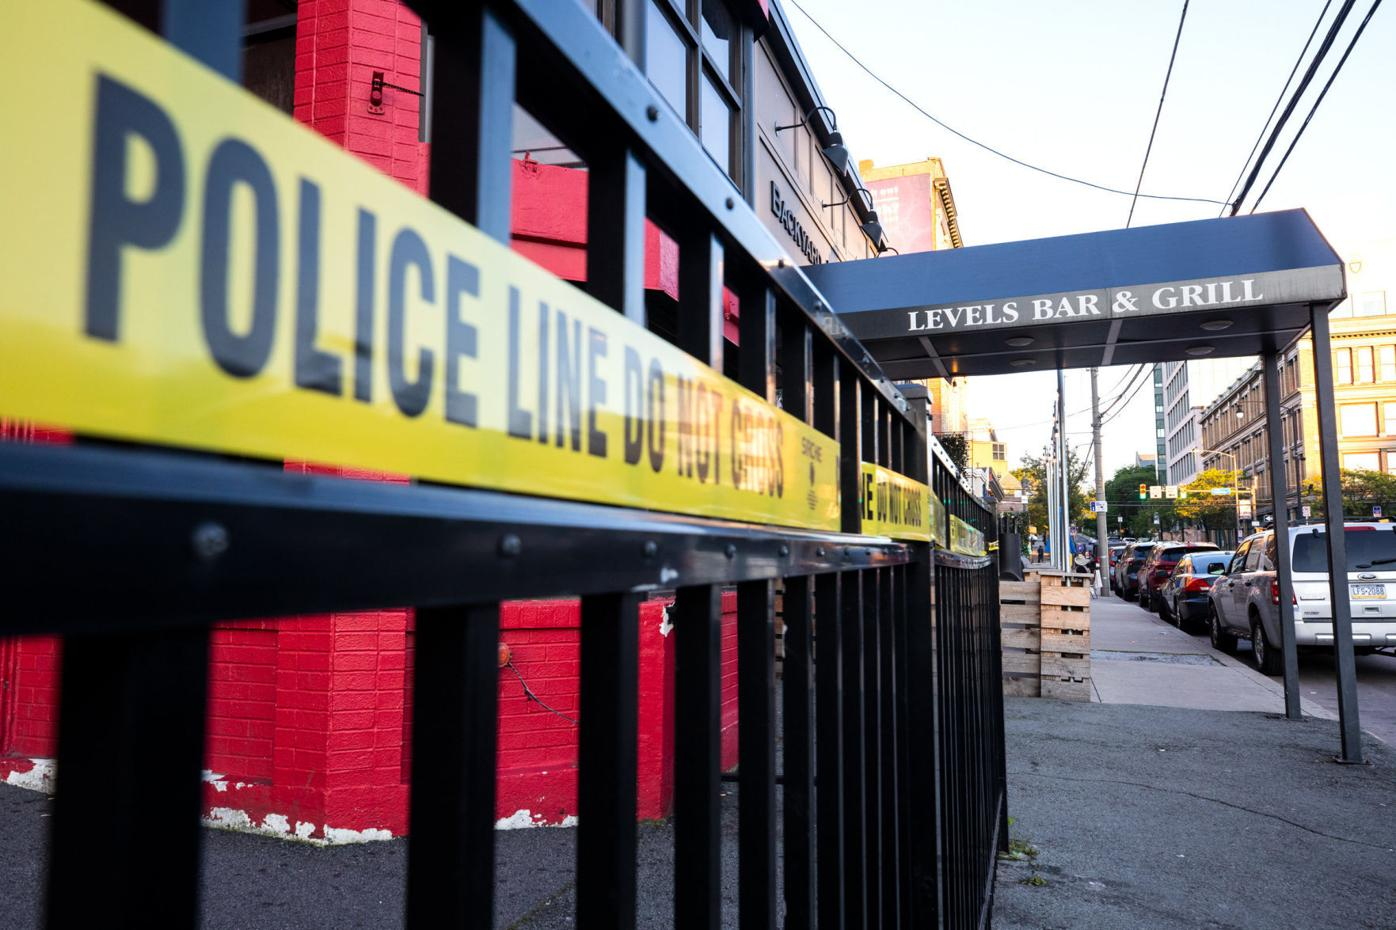 Levels Bar building structurally unsafe